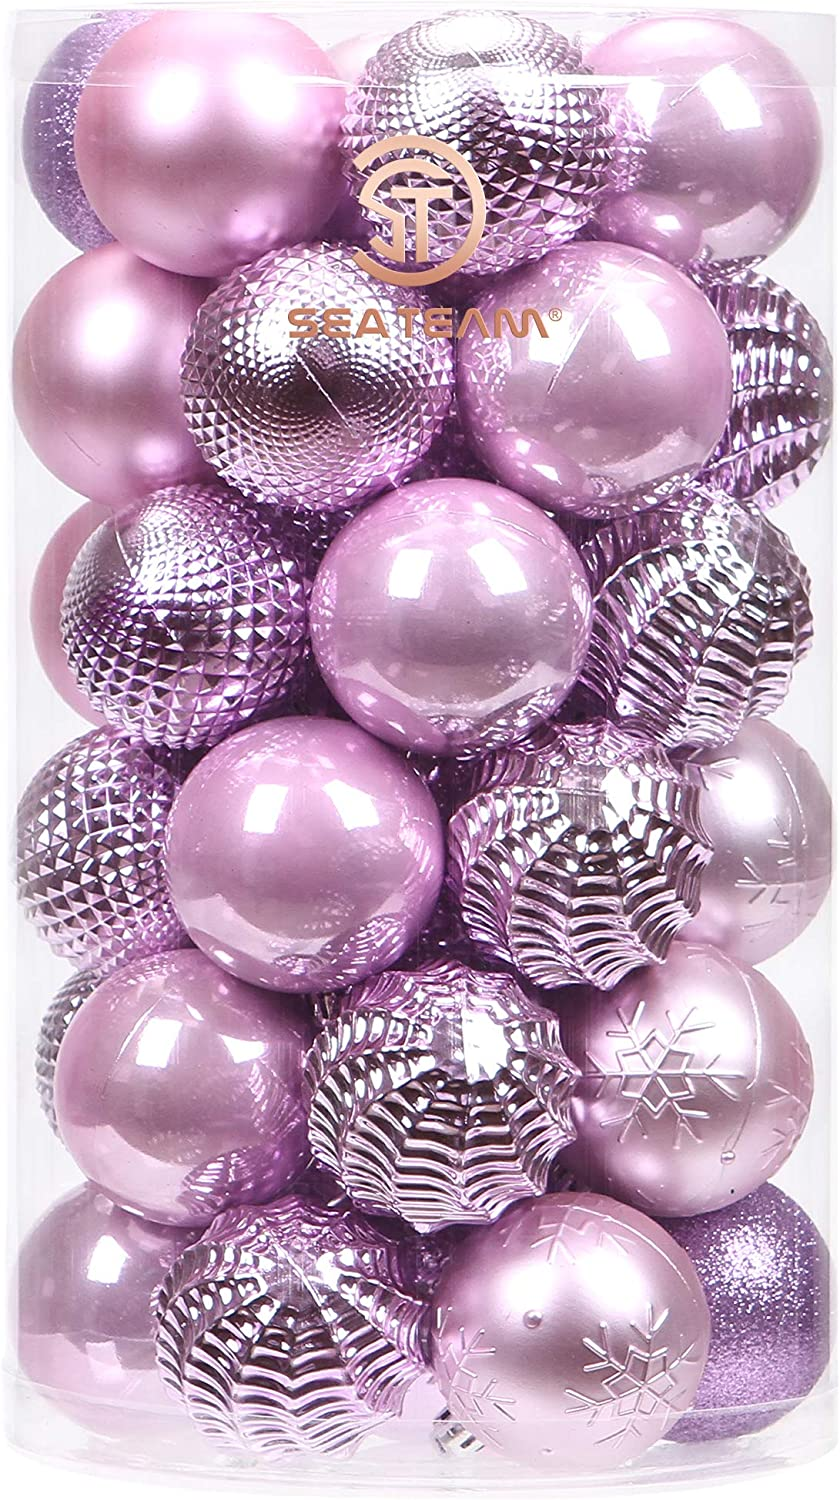 Sea Team 41-Pack Christmas Ball Ornaments with Strings, 60mm/2.36-Inch Medium Size Baubles, Shatterproof Plastic Christmas Bulbs, Hanging Decorations for Xmas Tree, Holiday, Wedding, Party, Lavender